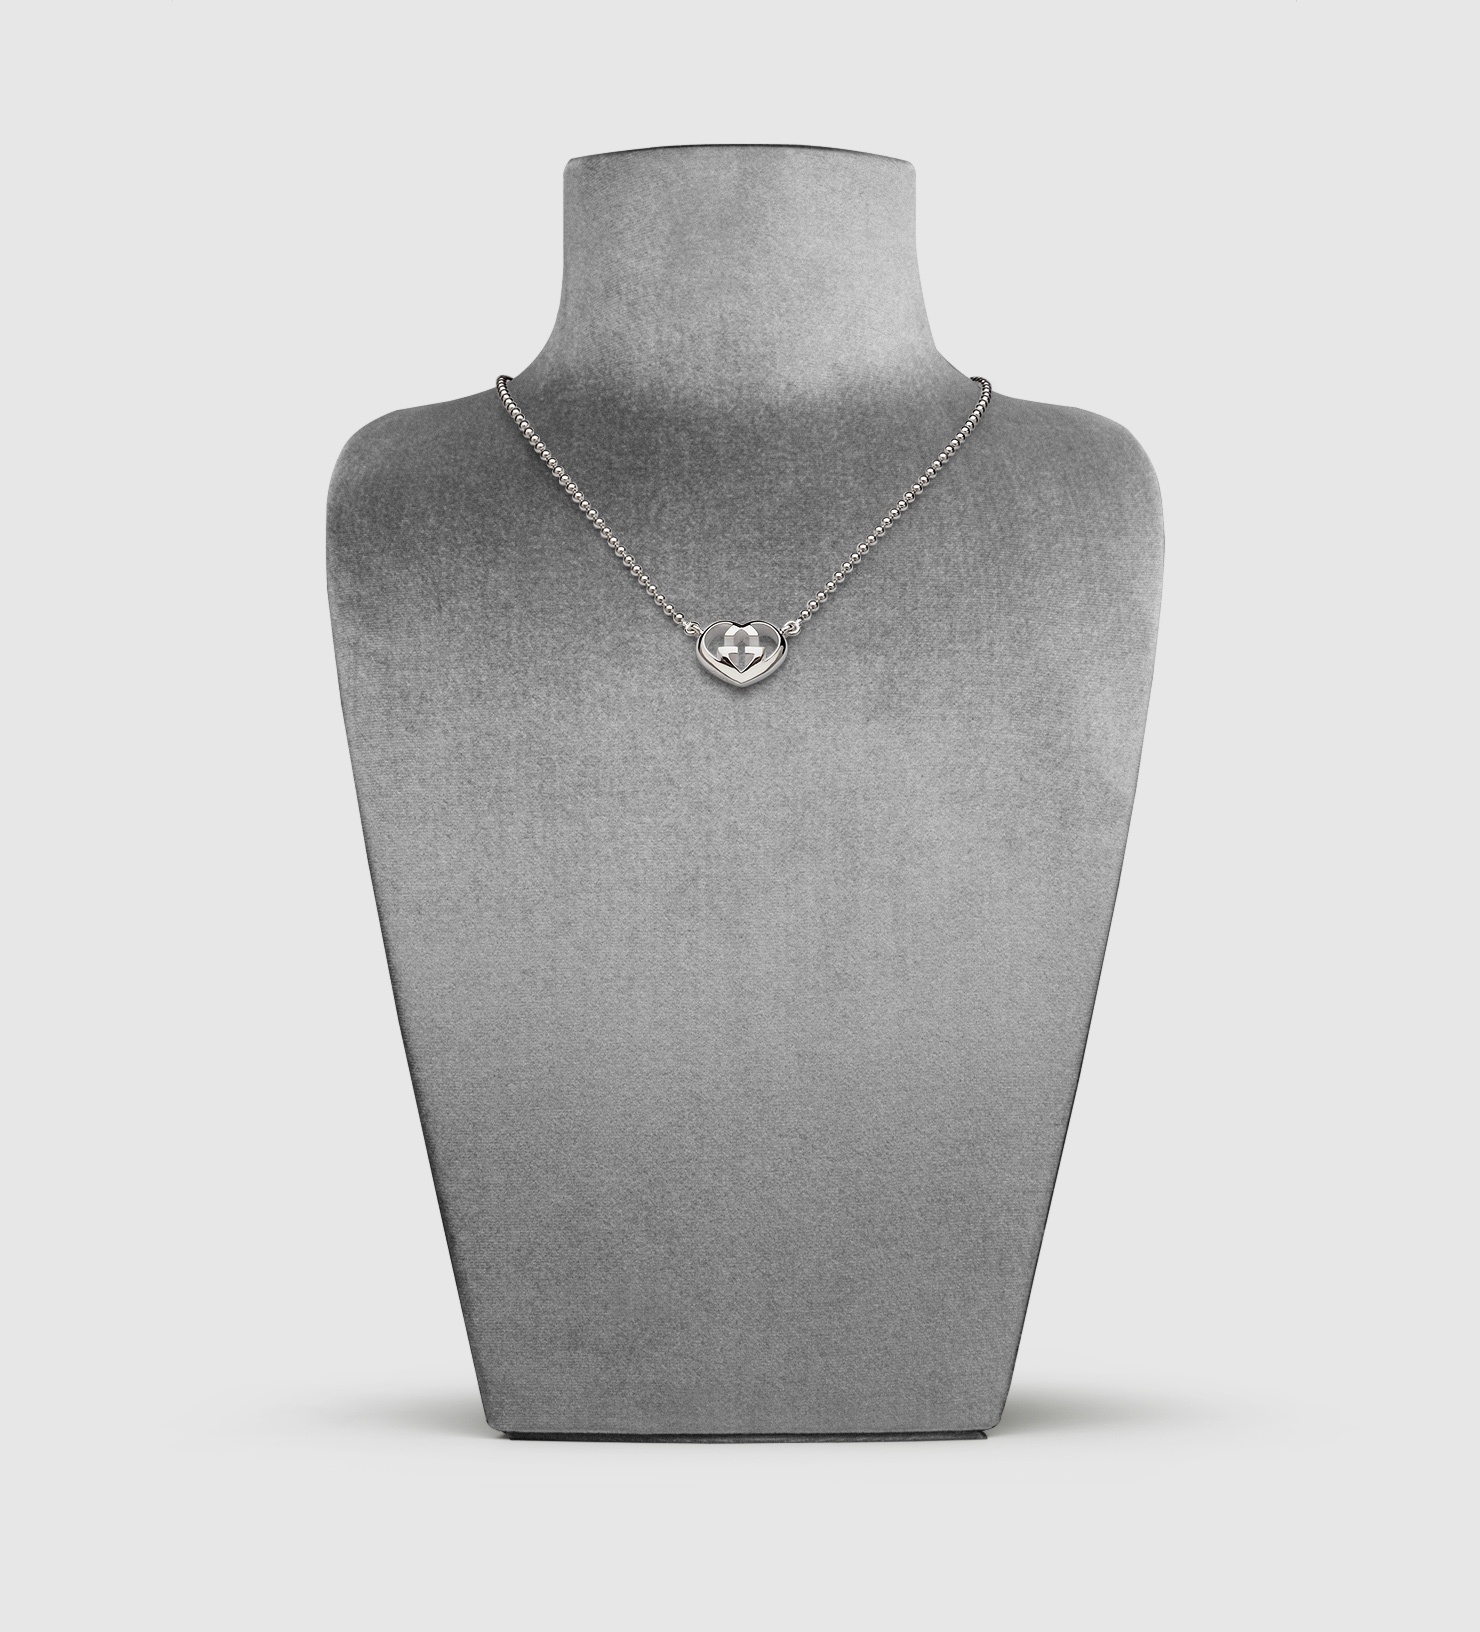 21725f1ba Gucci Necklace With Heart-shaped Interlocking G Motif Pendant in ...